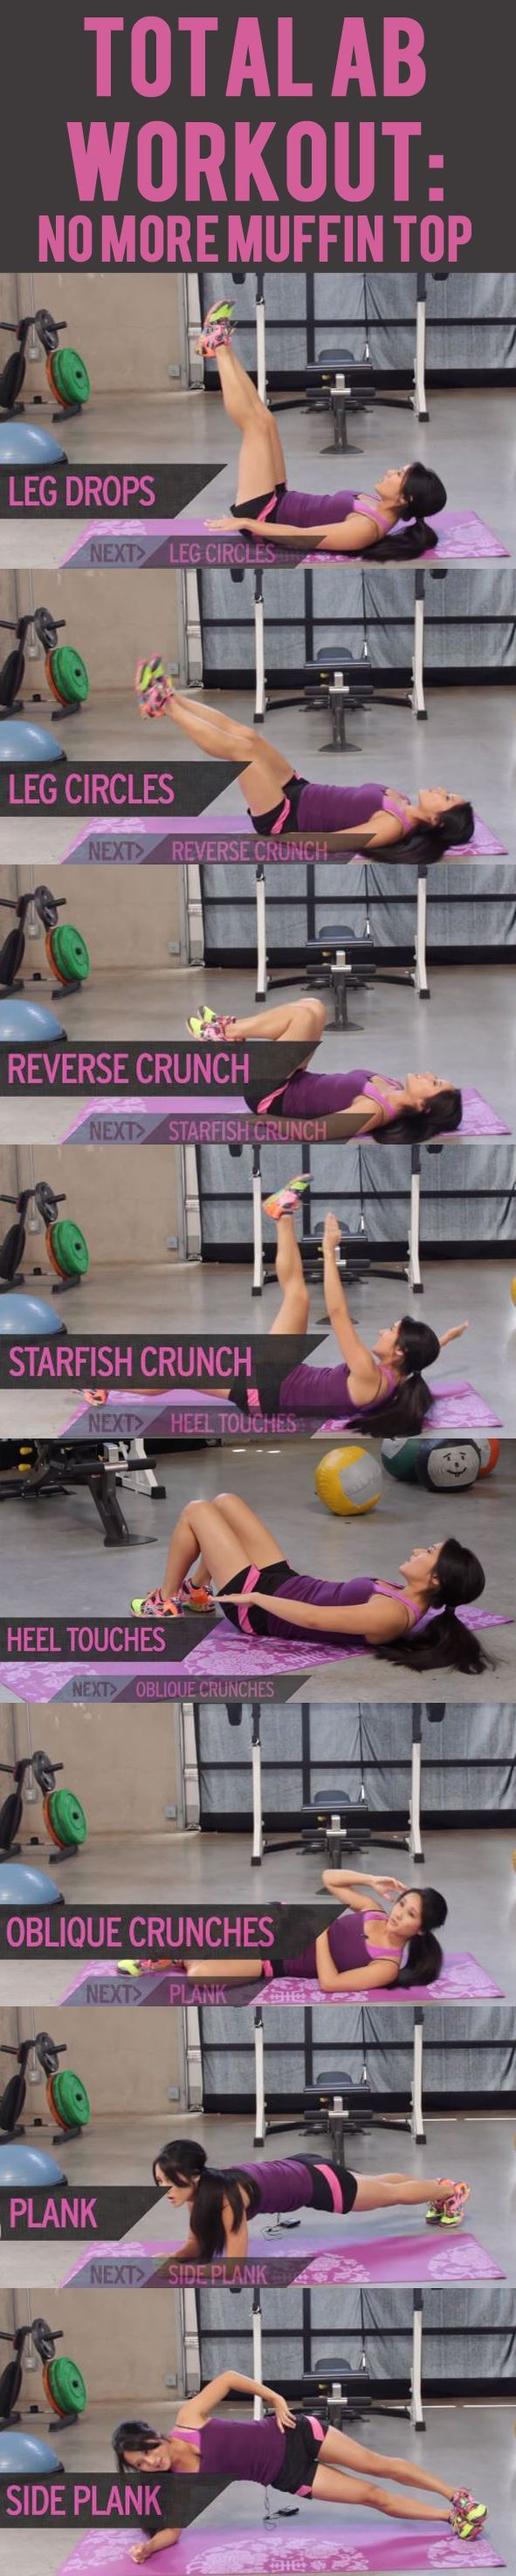 The best ab exercises for toning and slimming- and to get rid of that muffin top!